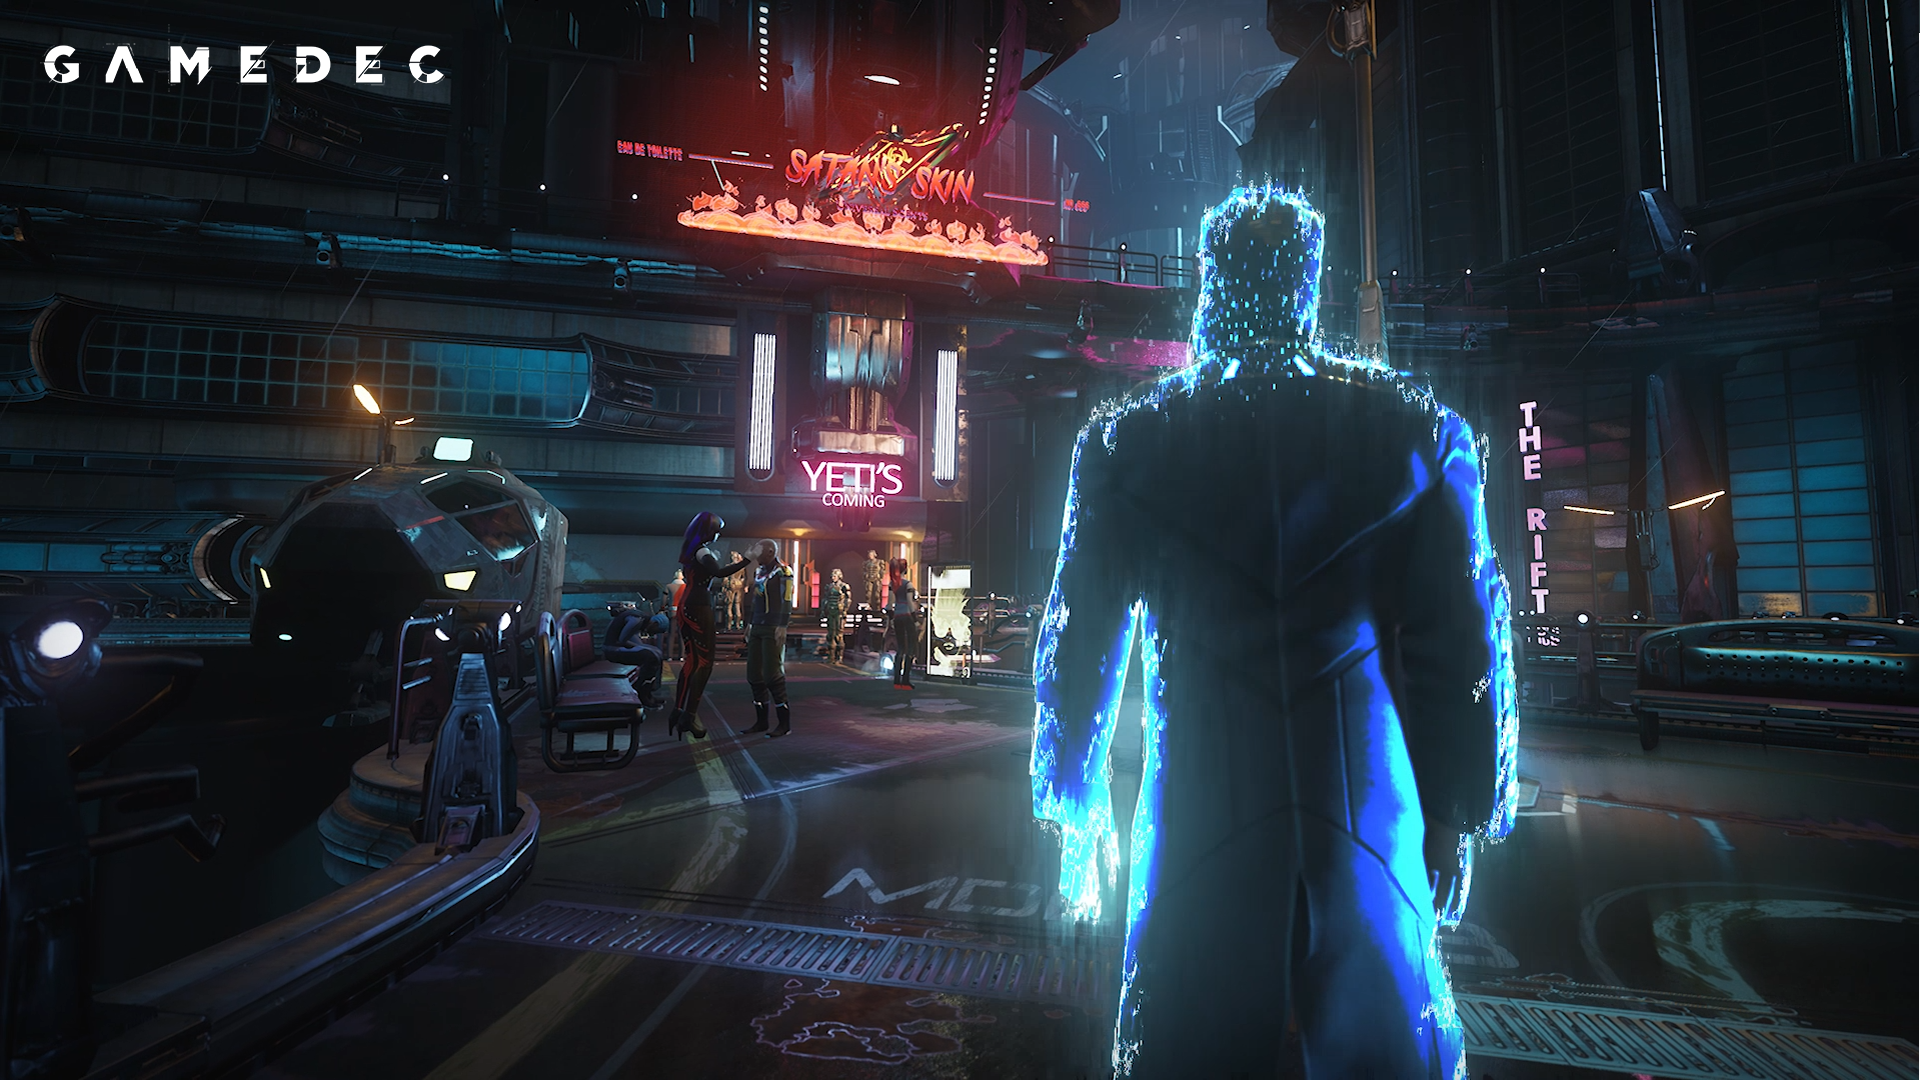 Rpg Games 2020.Adaptive Cyberpunk Rpg Gamedec Announced For Pc Set To